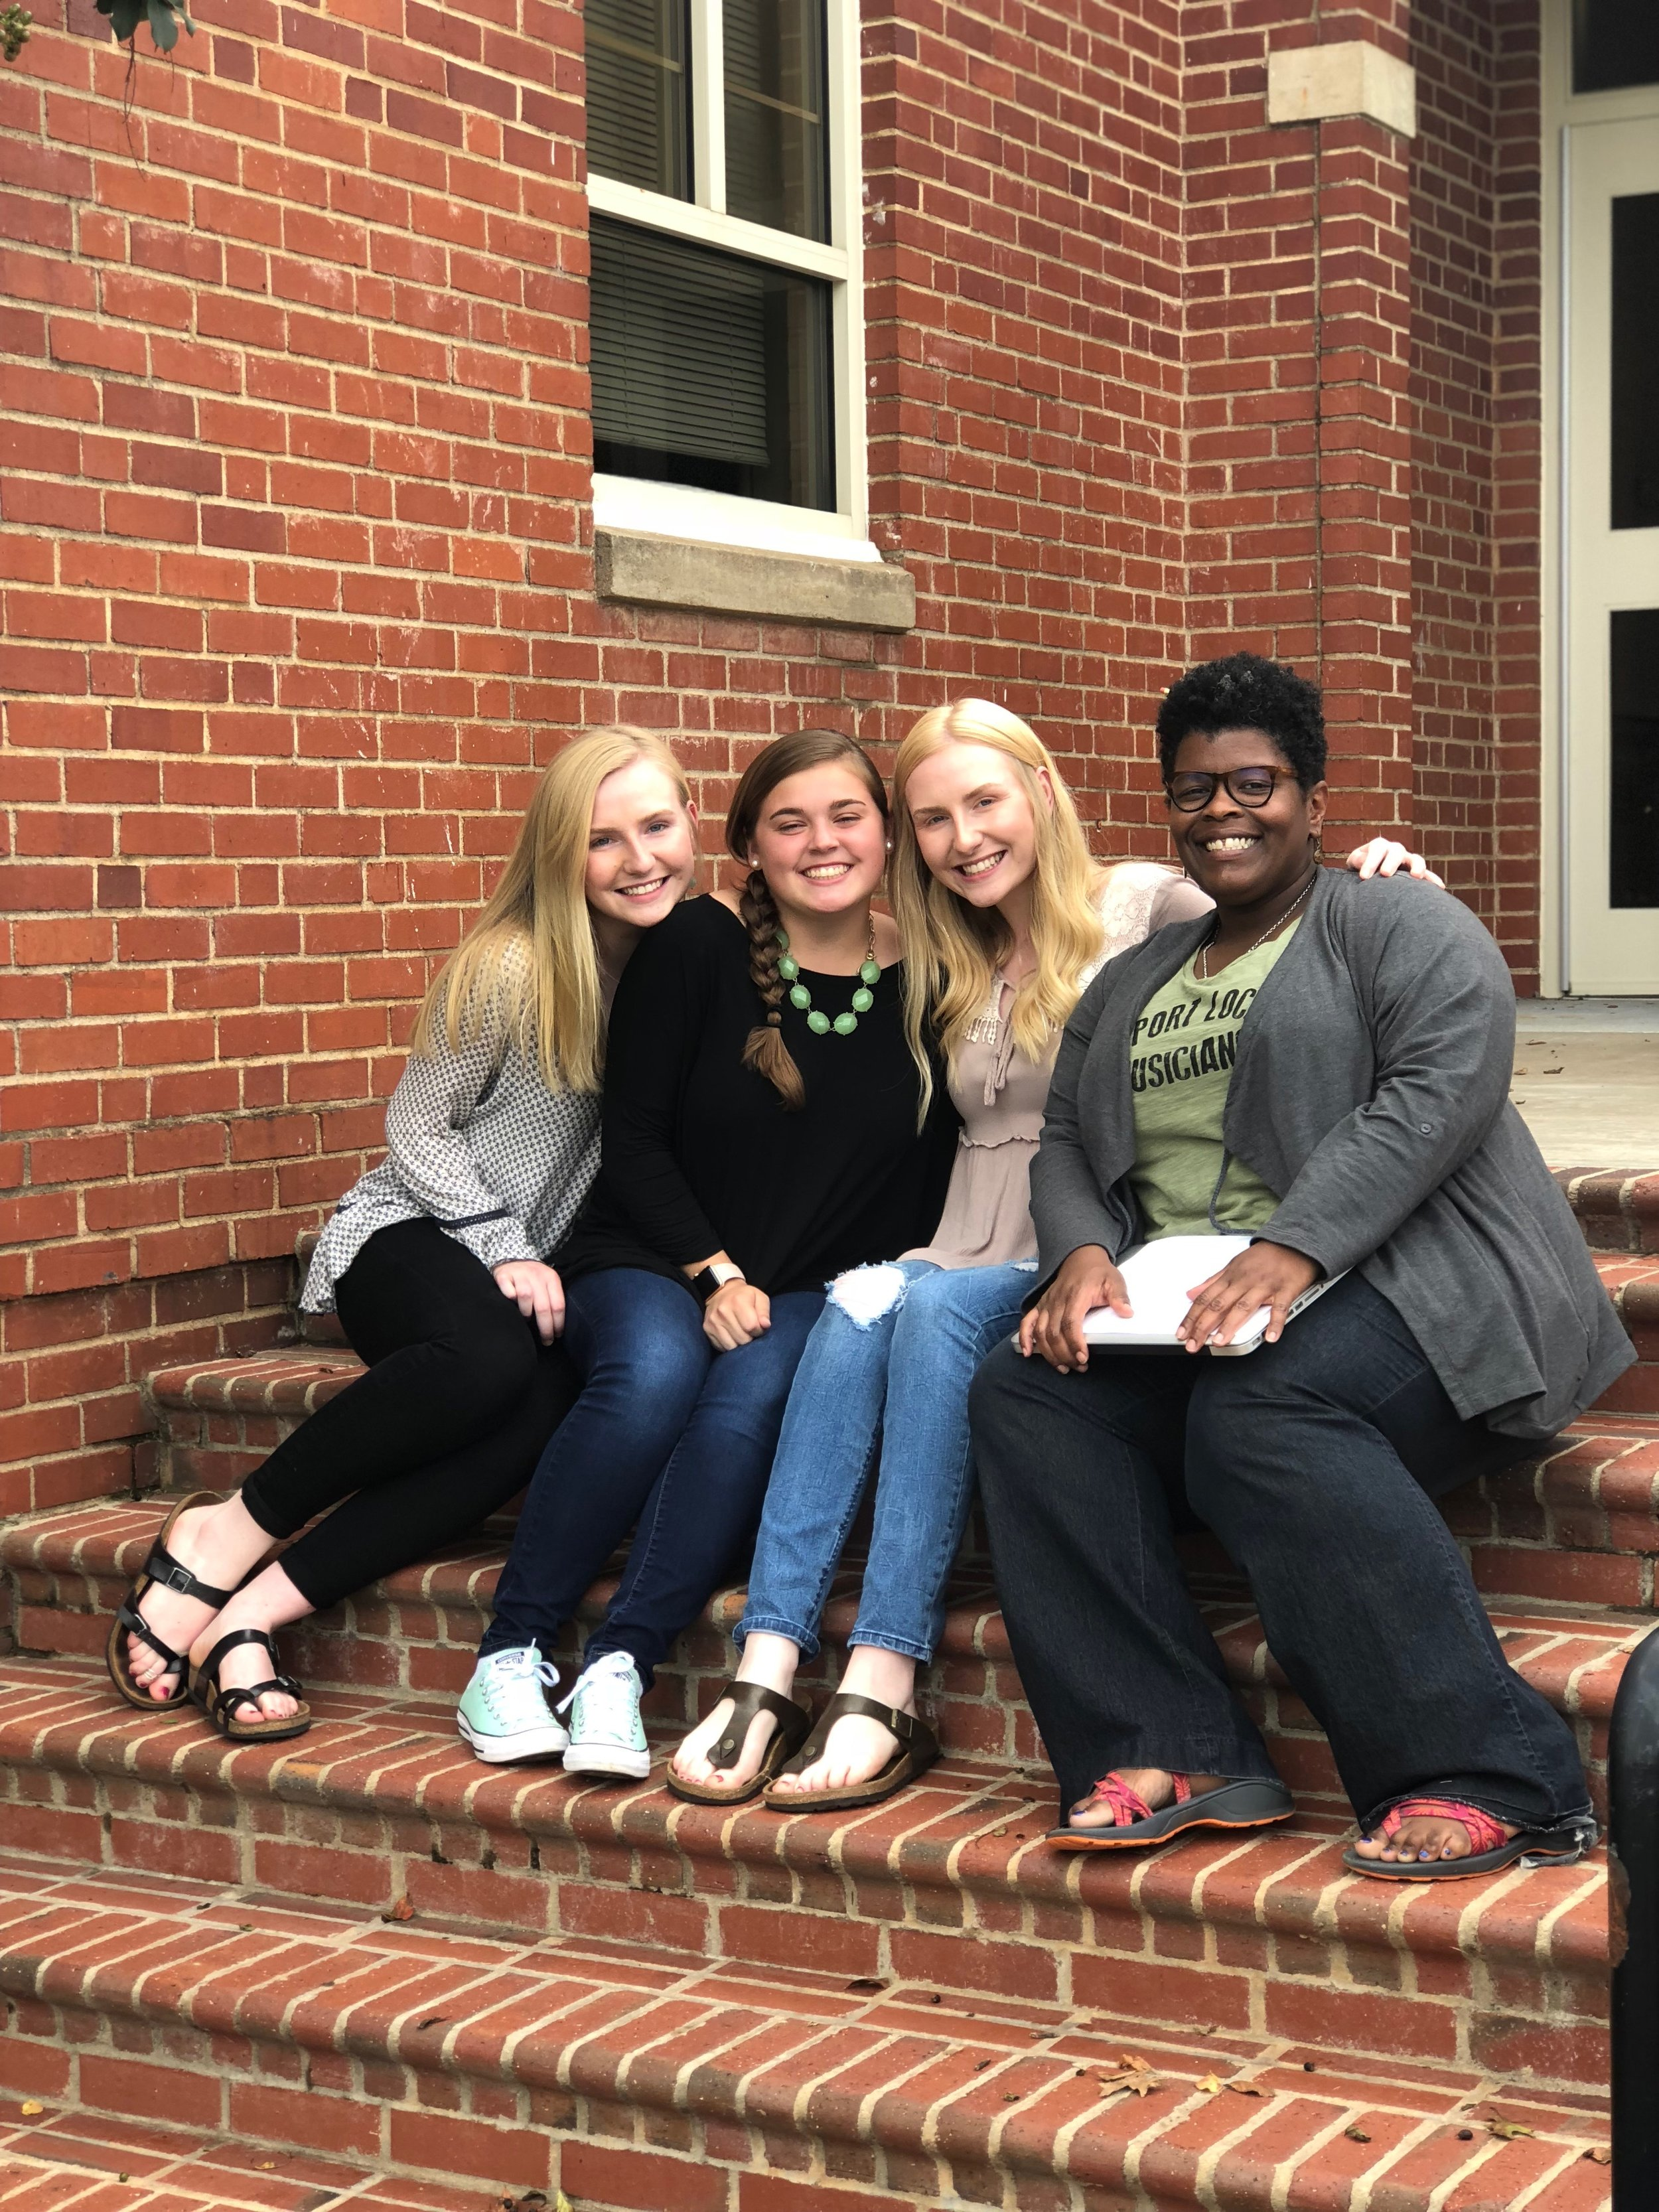 Madeline (second from left) with classmates and Professor Jondra Harmon (right).